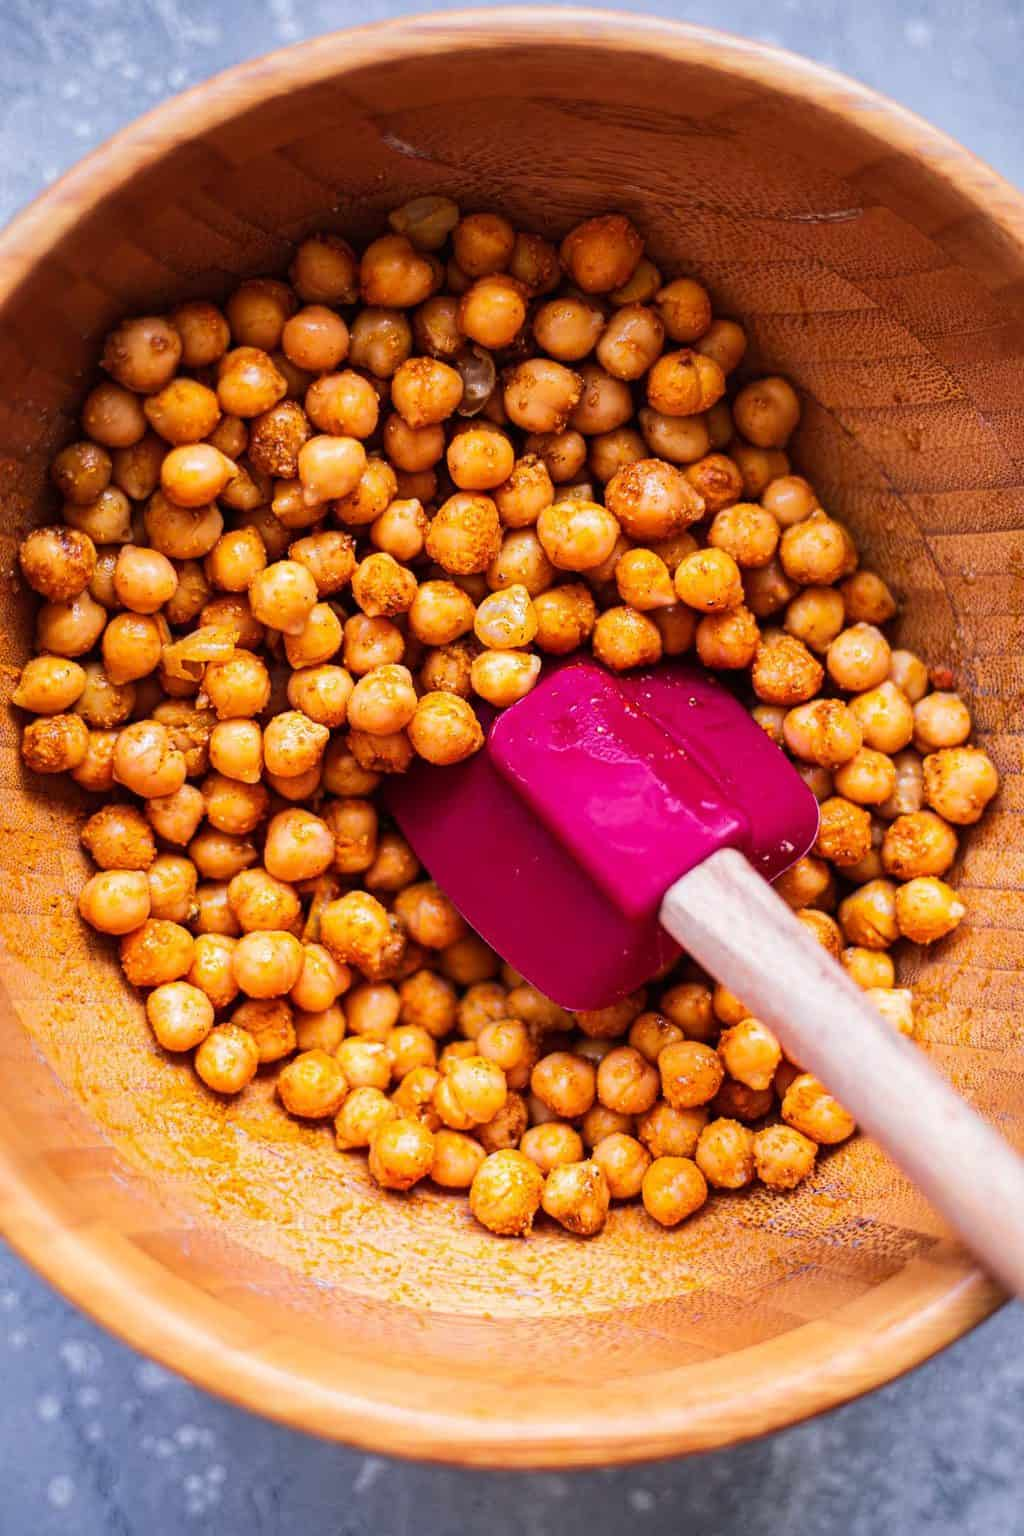 Turmeric chickpeas in a mixing bowl